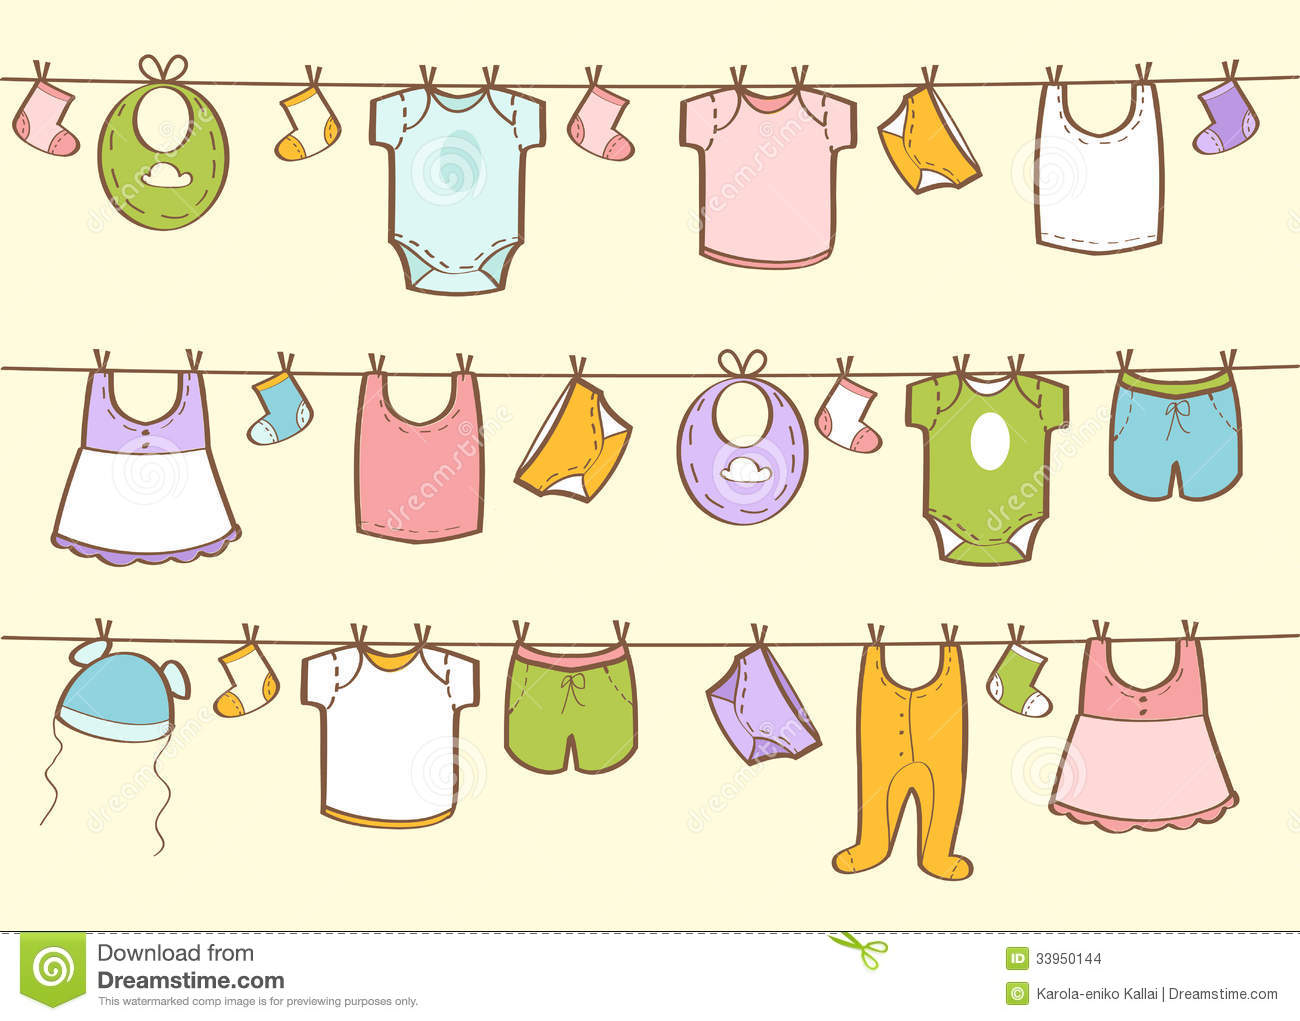 Free clothes cliparts download. Clothing clipart cute